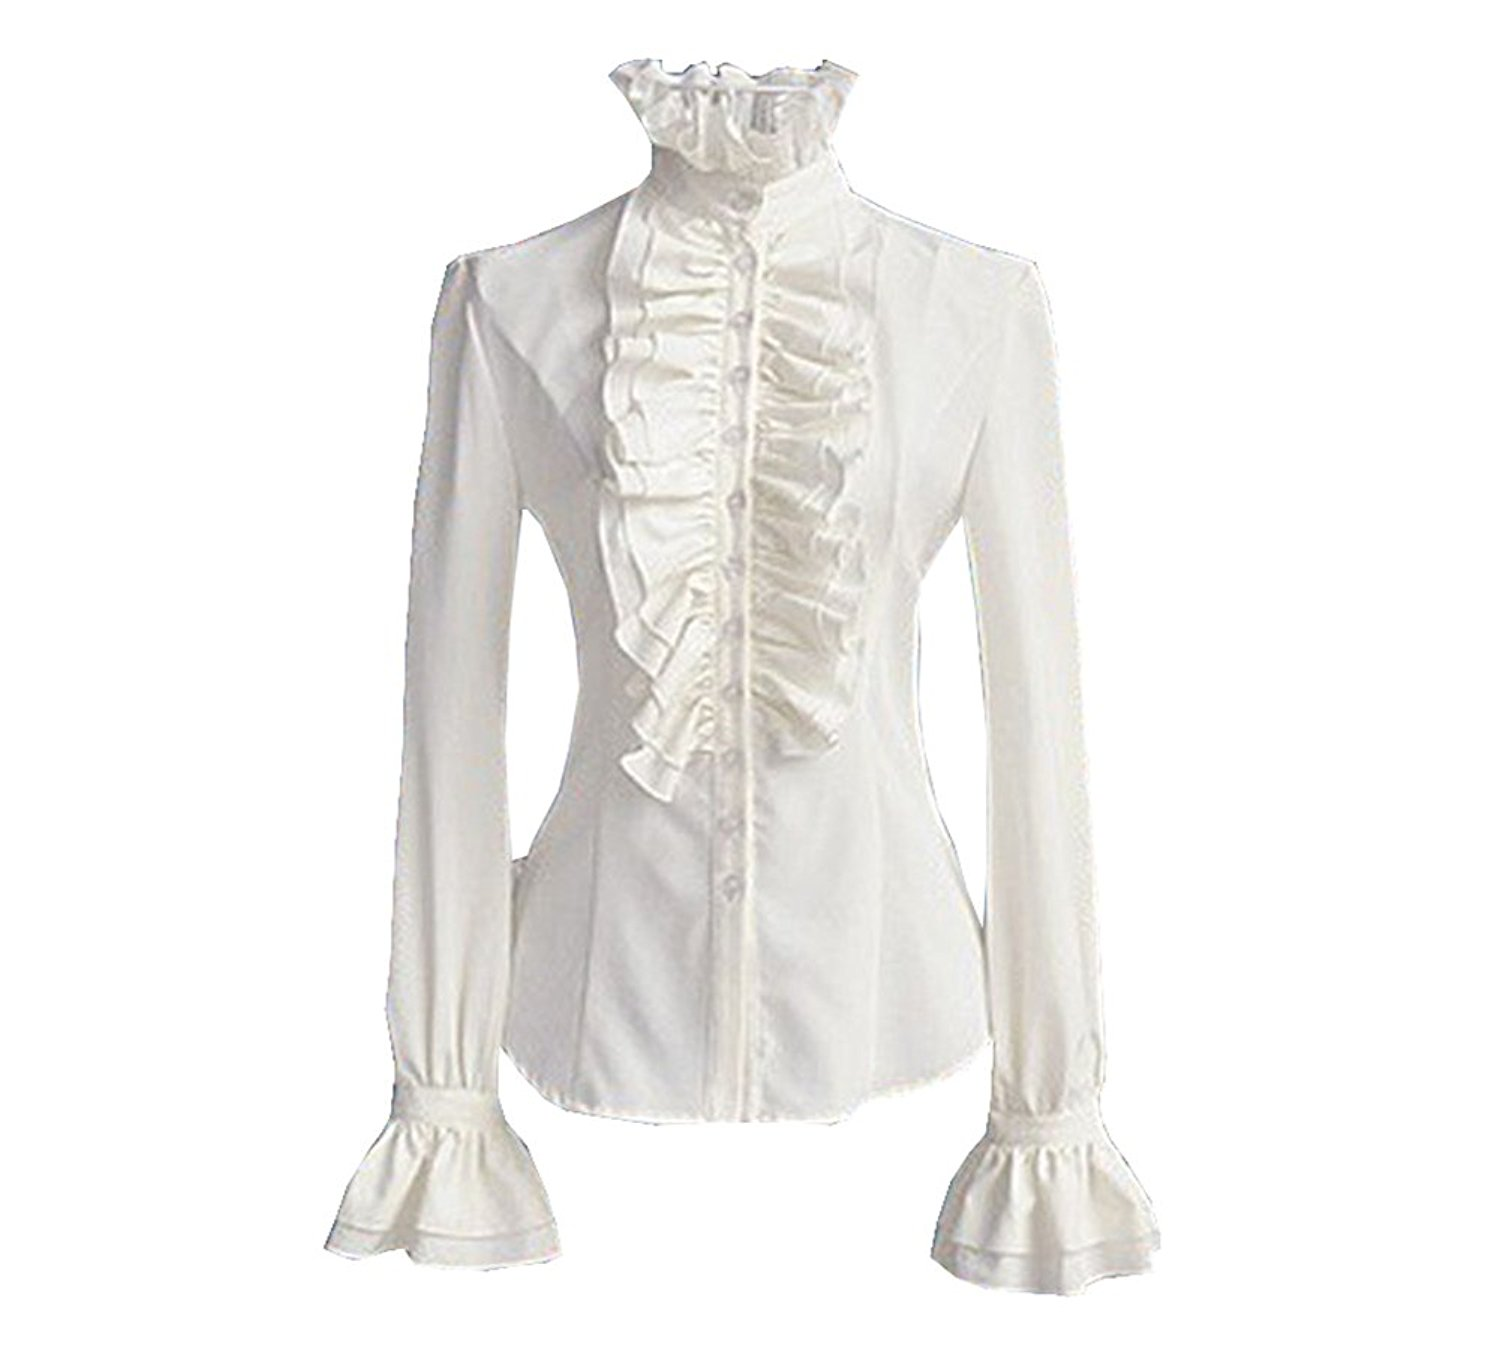 Cheap White Blouse With Ruffle Collar Find White Blouse With Ruffle